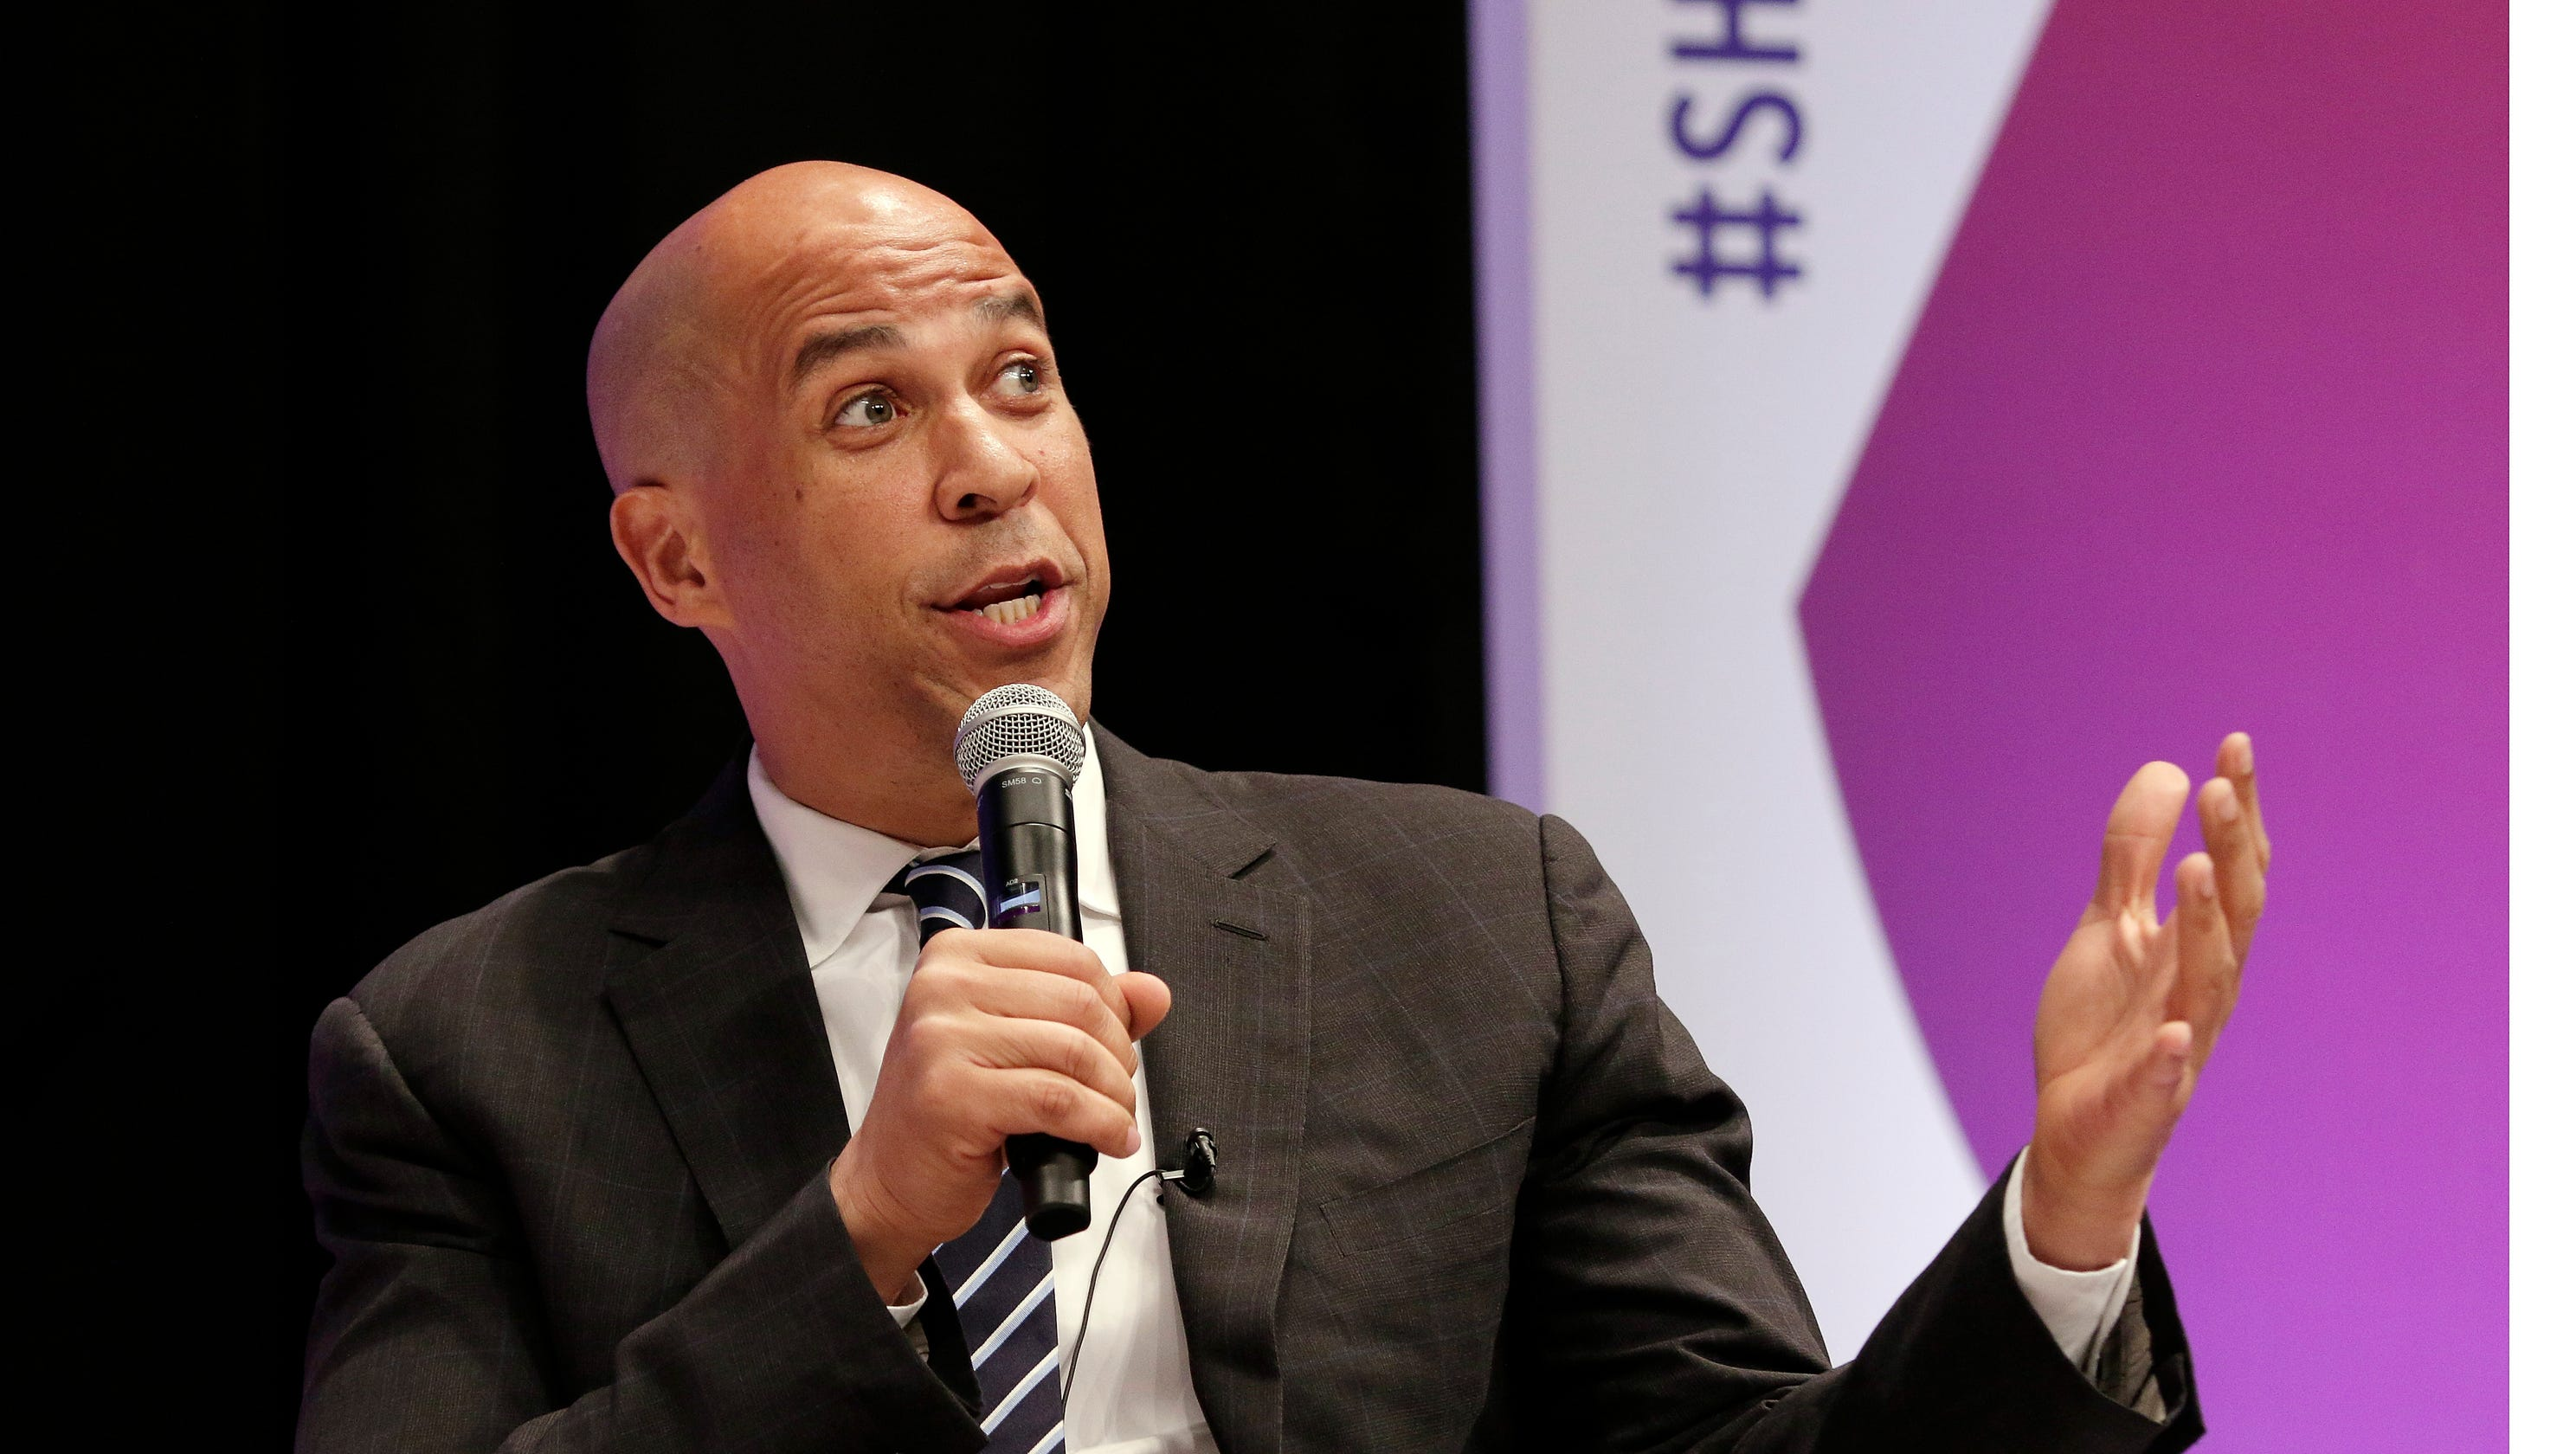 Cory Booker Ethnicity, Race, and Nationality